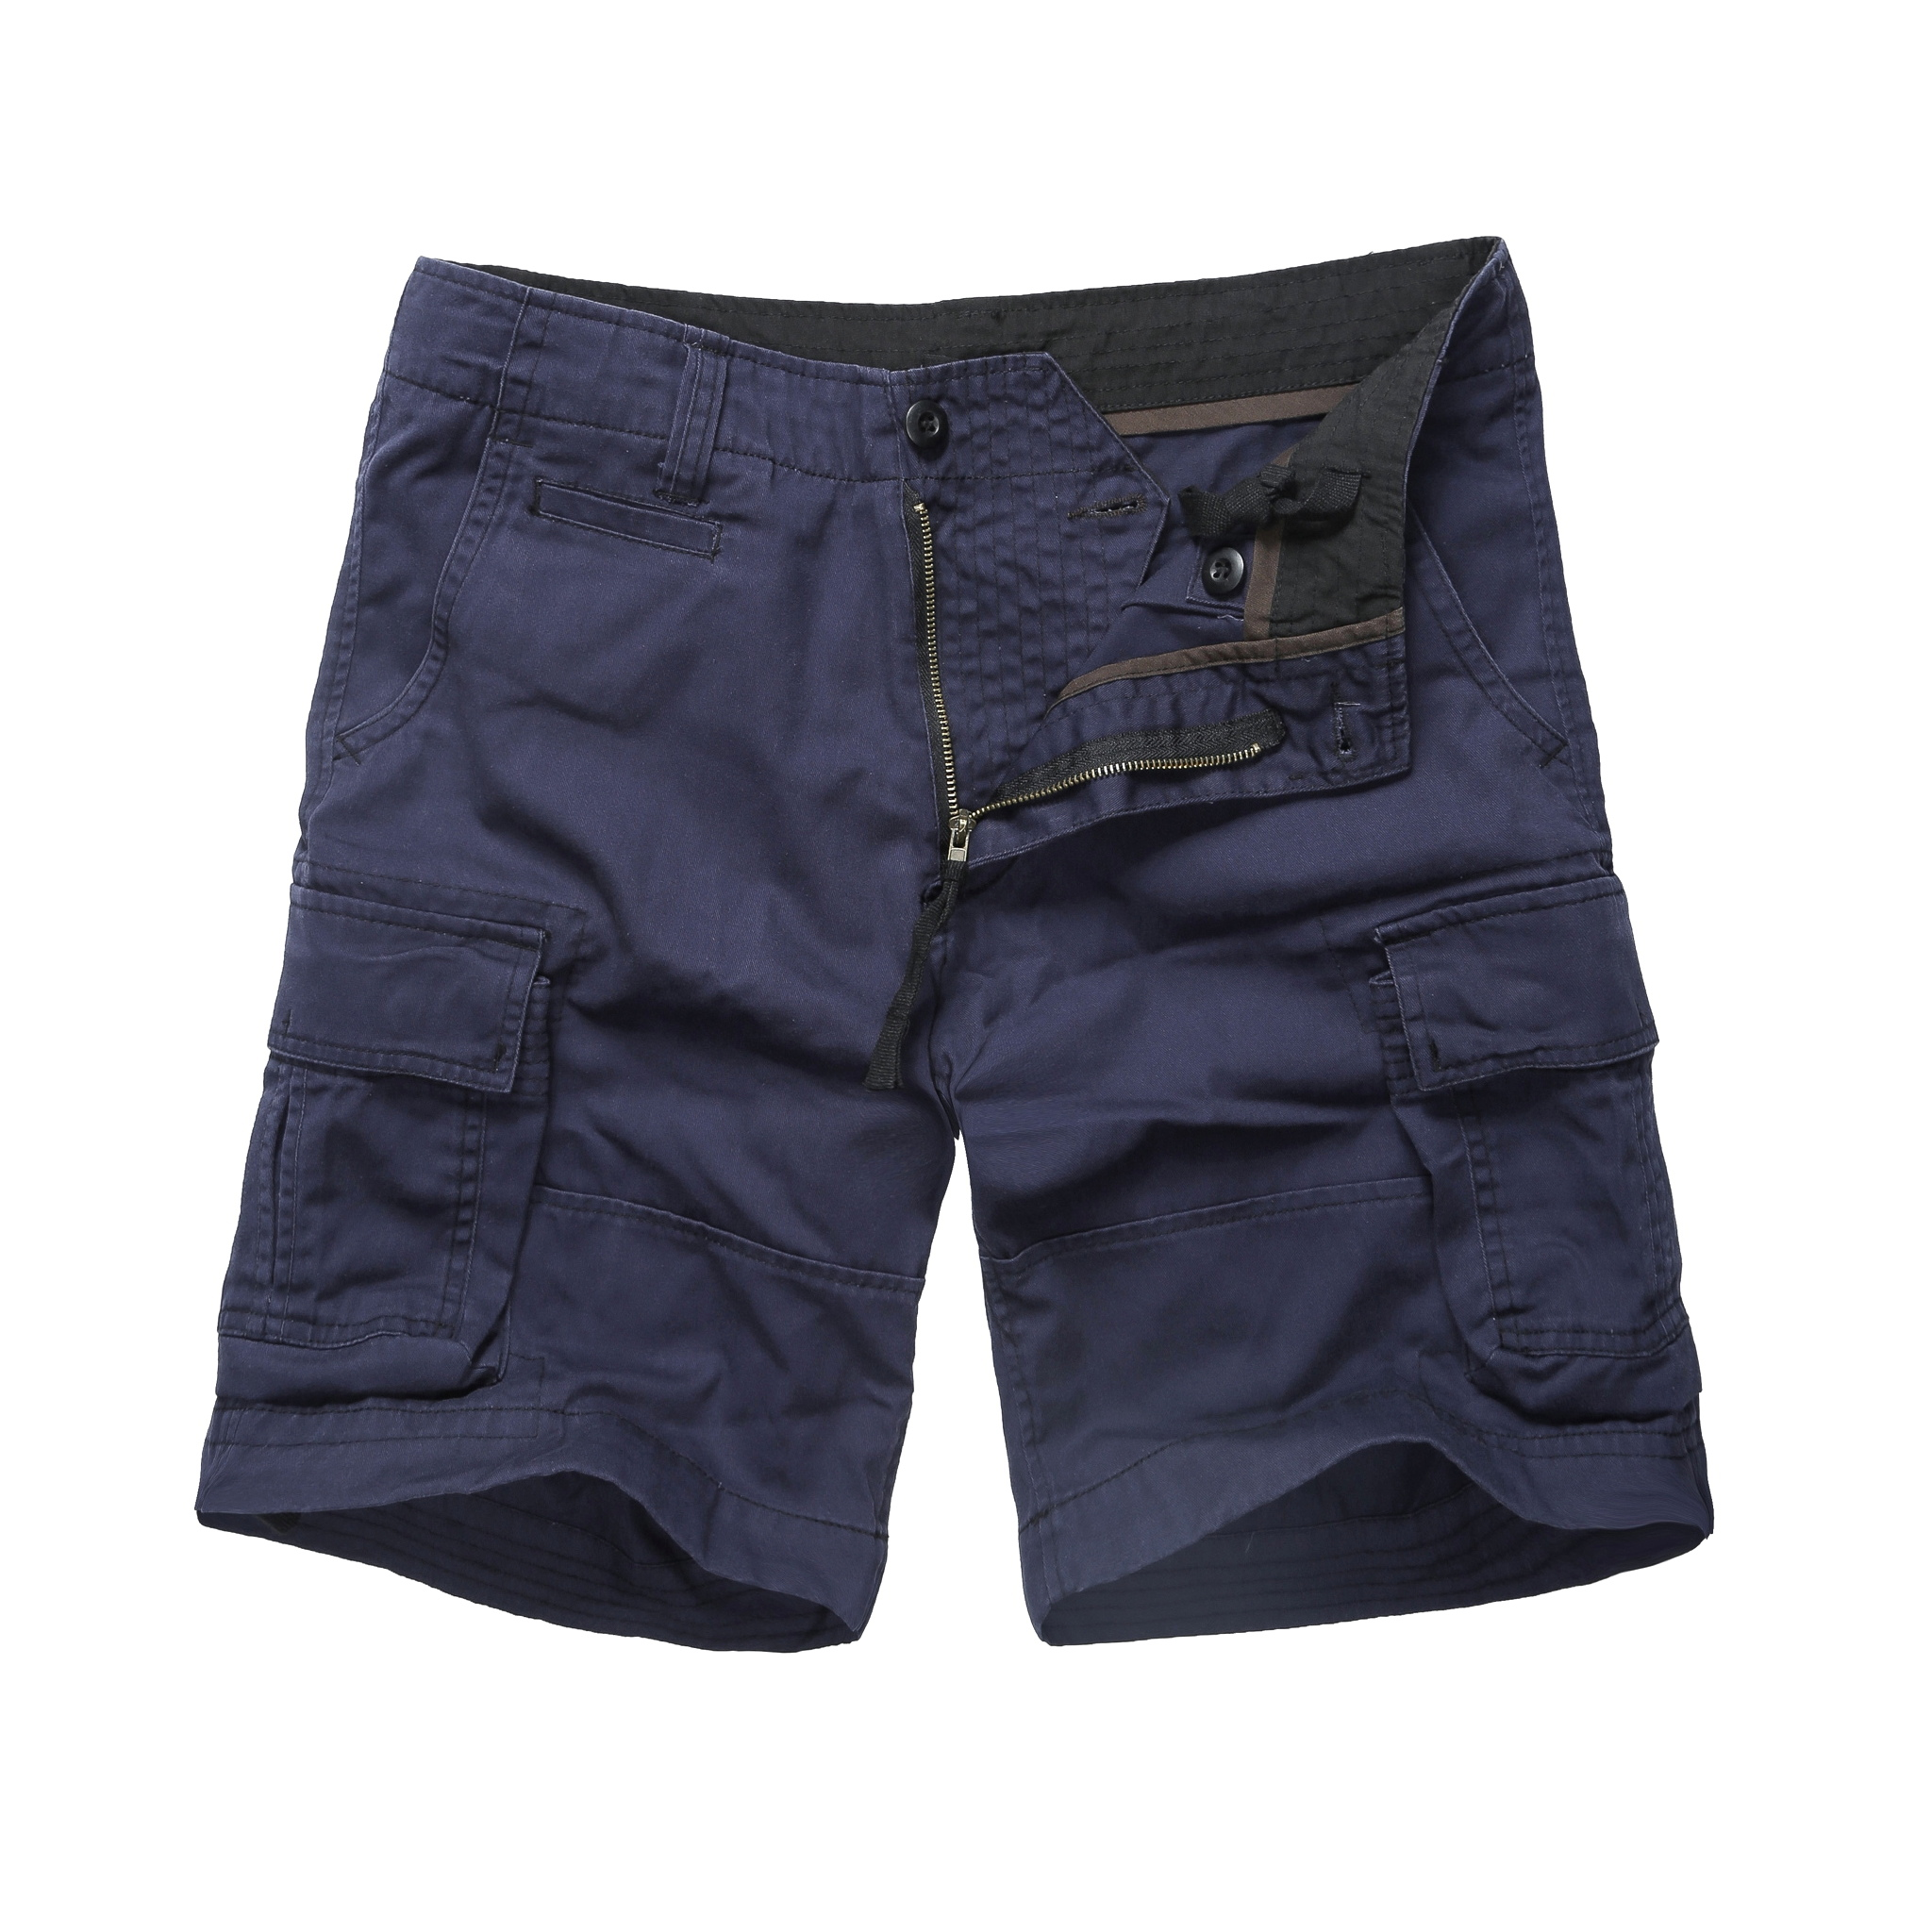 Mens-Work-Trade-Cargo-Shorts-Army-Style-Outdoor-Camping-Fishing-Shorts